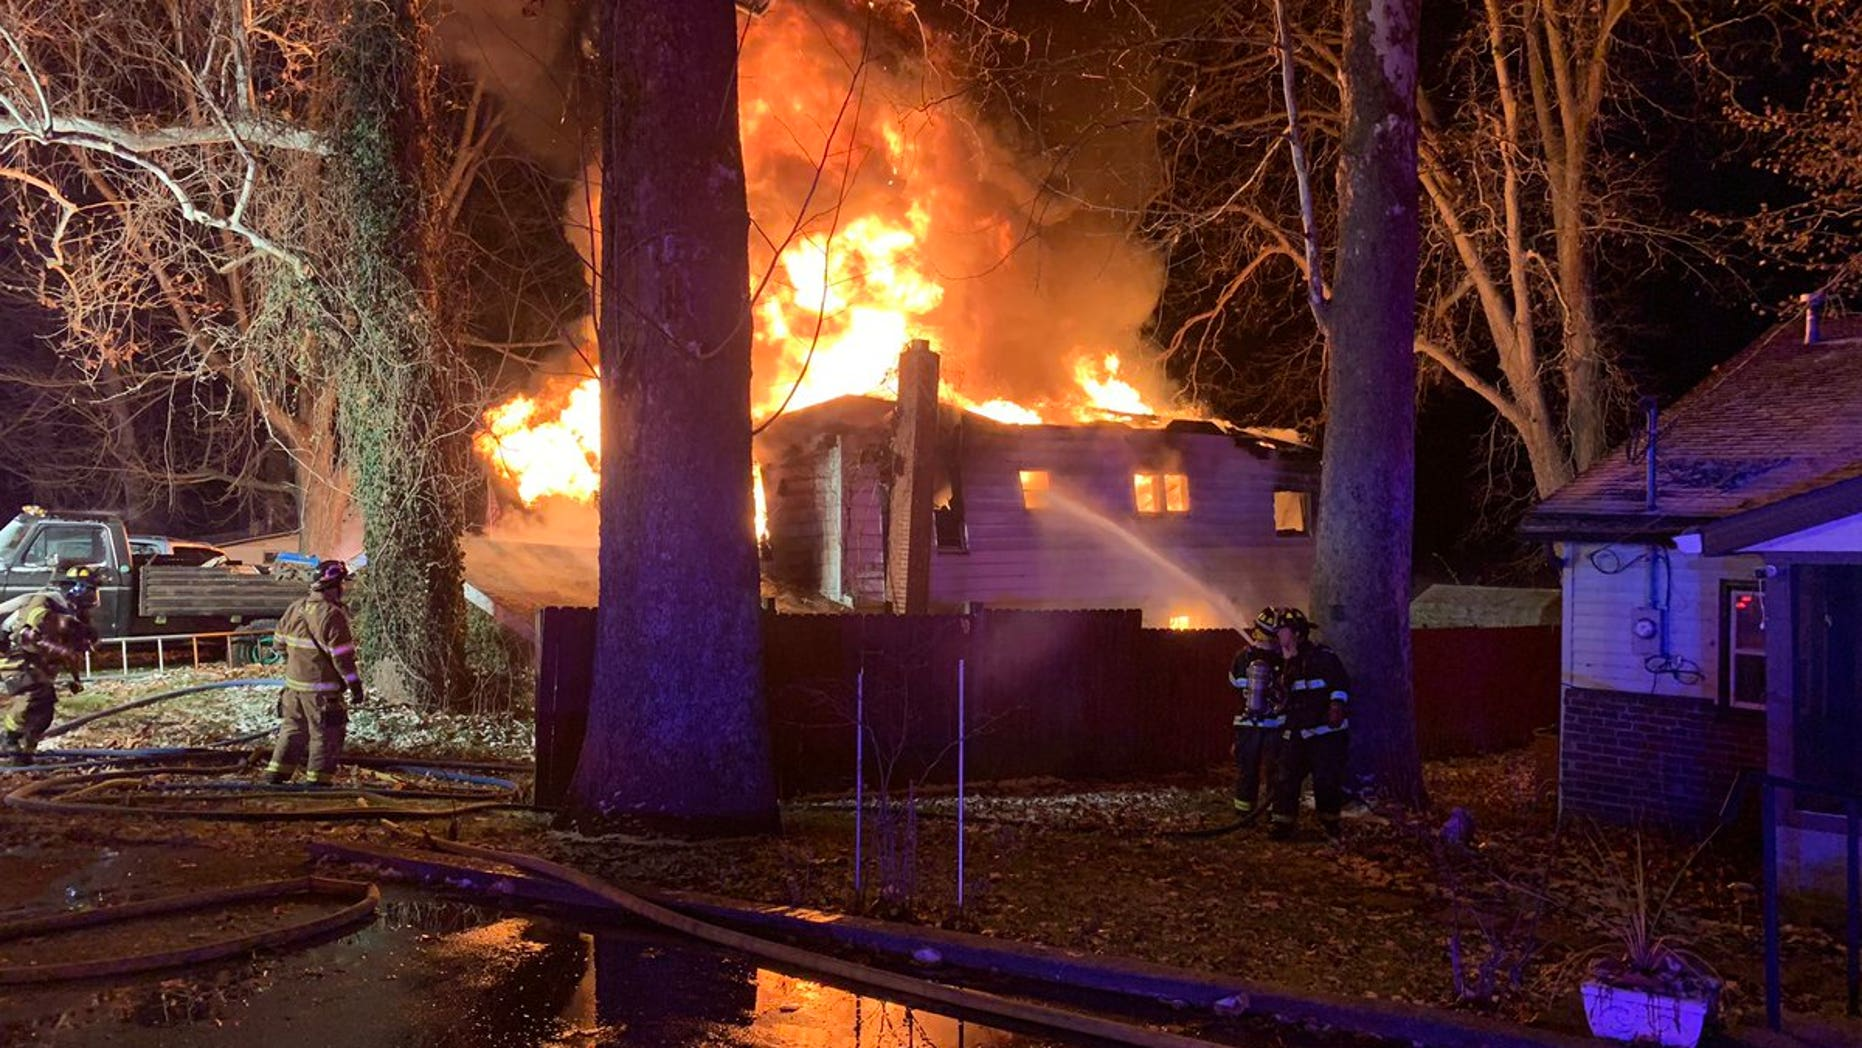 Firefighters respond to morning fire in rural Indians.